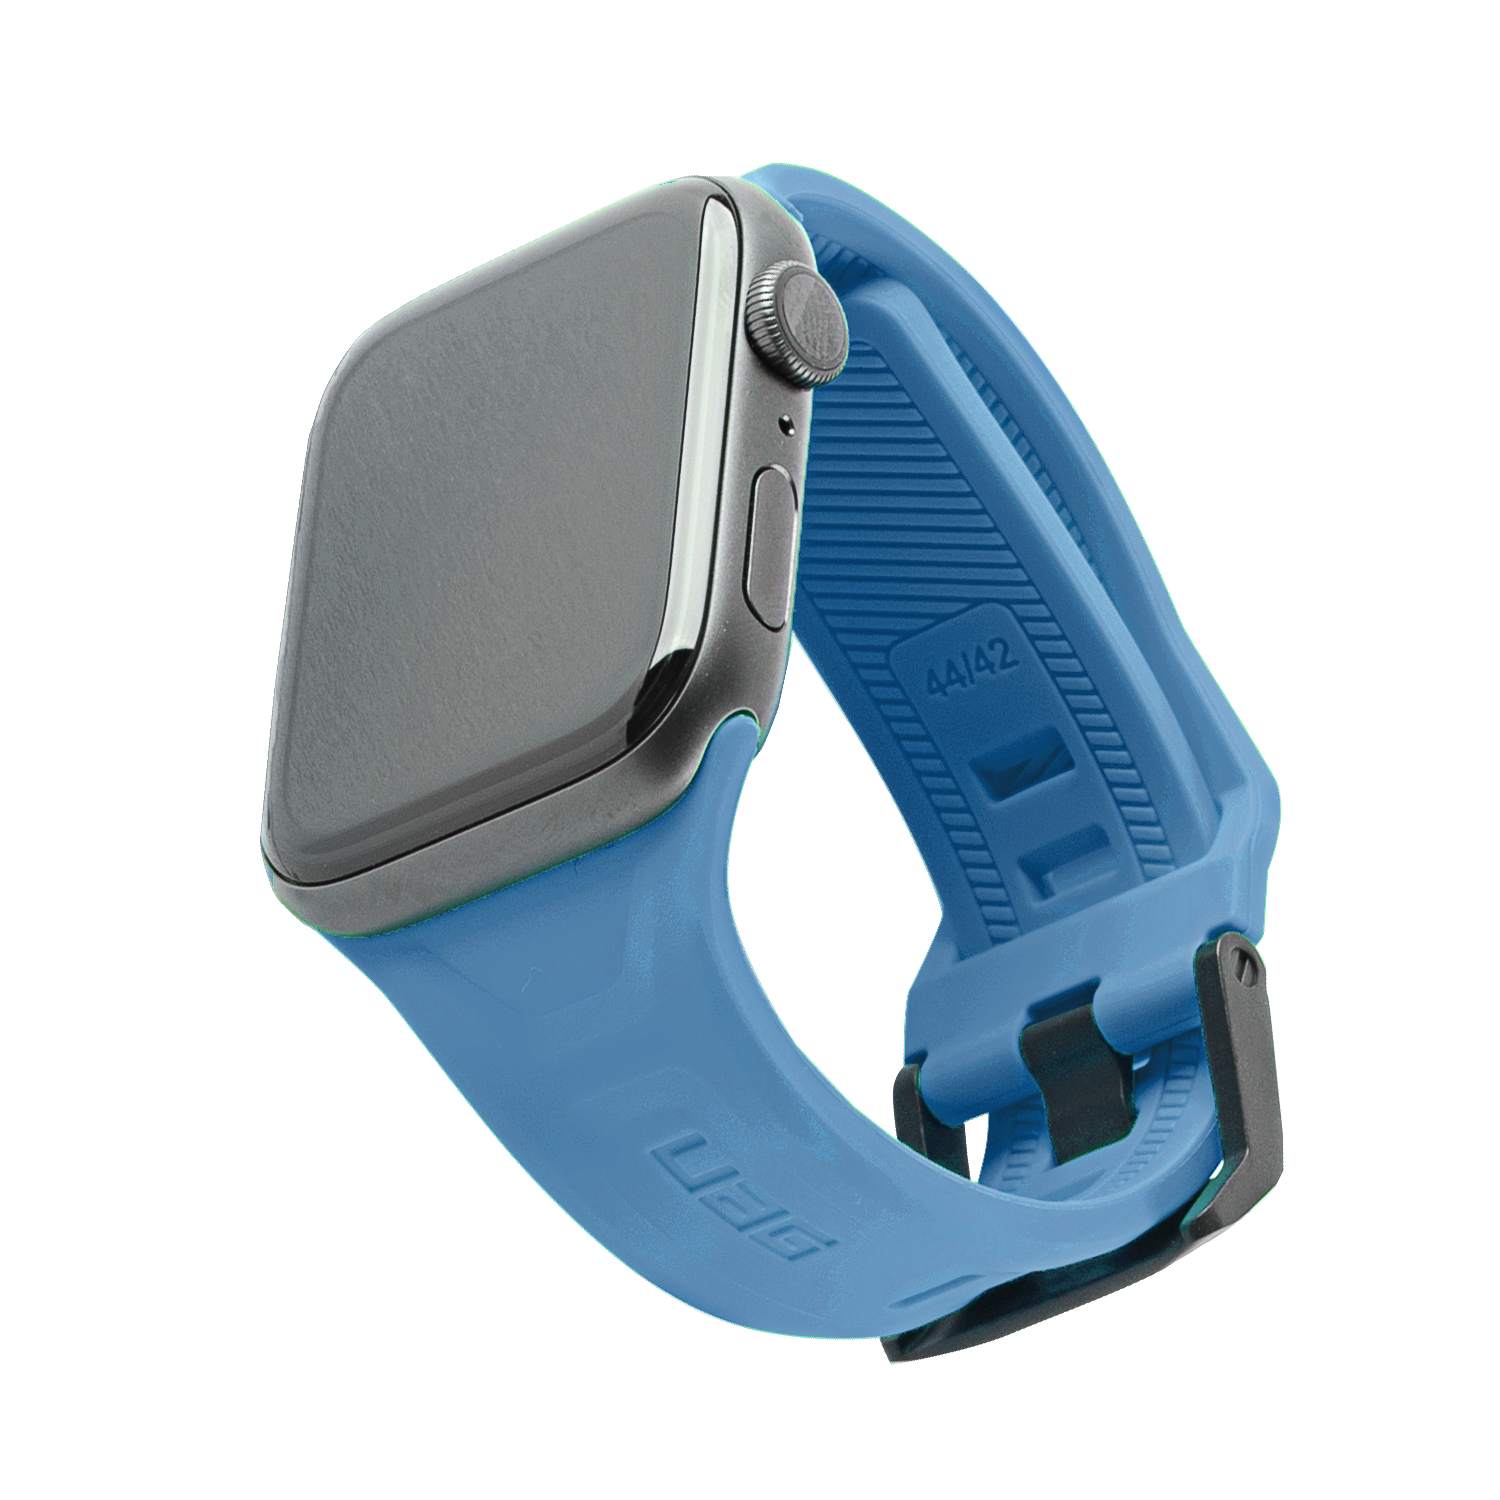 UAG Scout Silicone Watch Strap for Apple Watch 42mm / 44mm - Blue